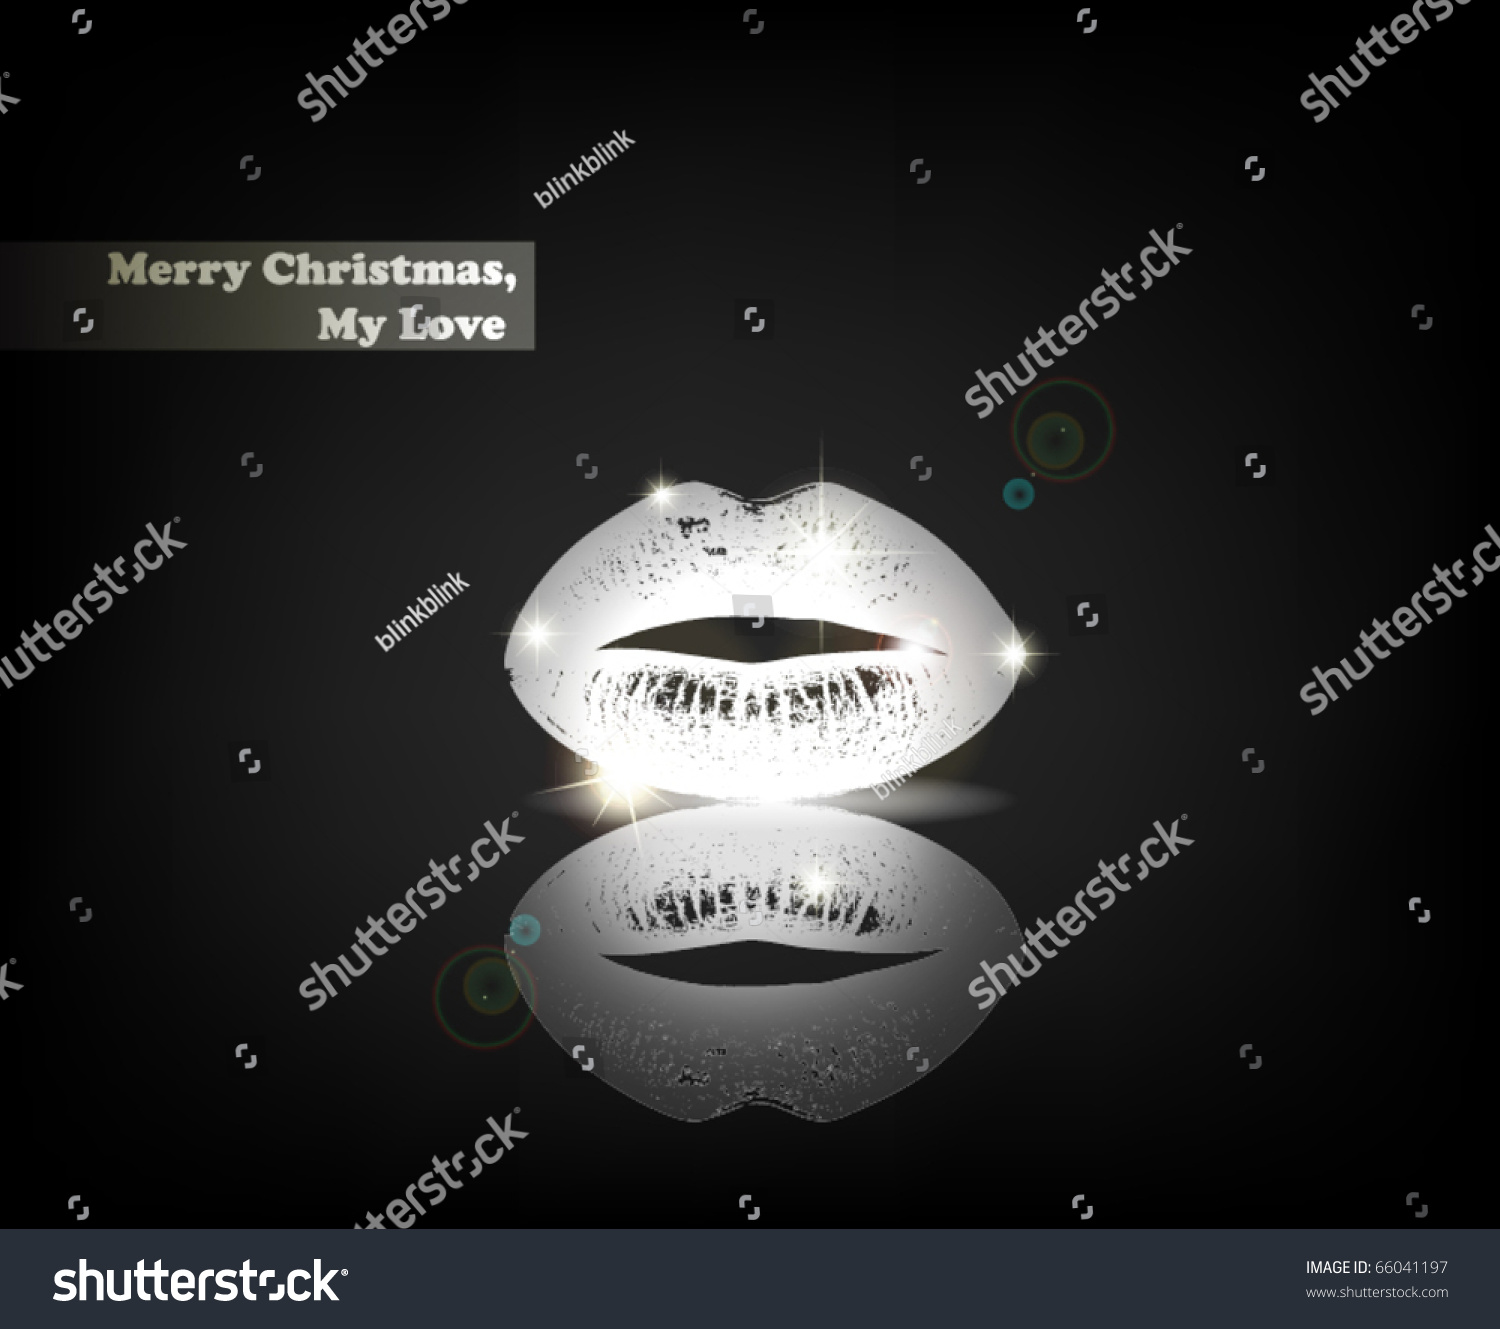 merry christmas my love from serial of minimalistic contemporary greeting christmas cards